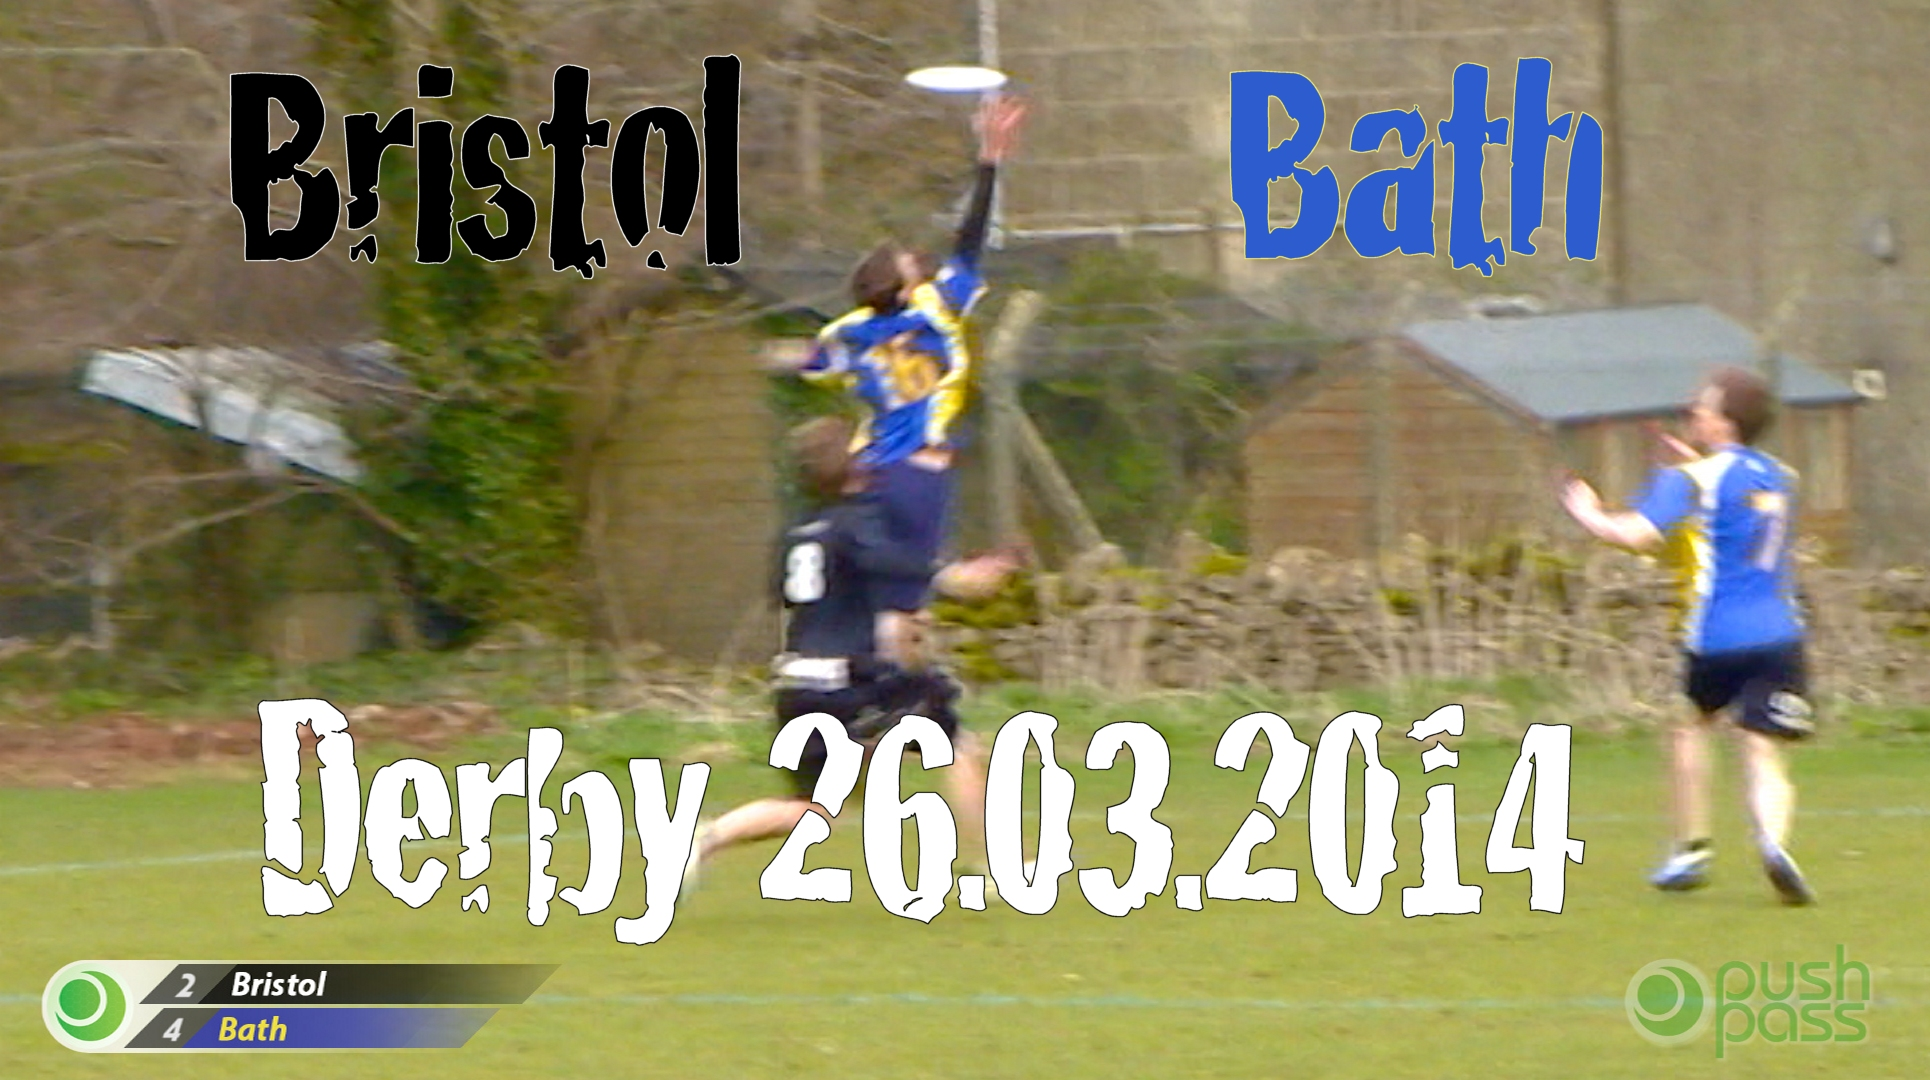 Bristol v Bath Derby - 26.03.2014